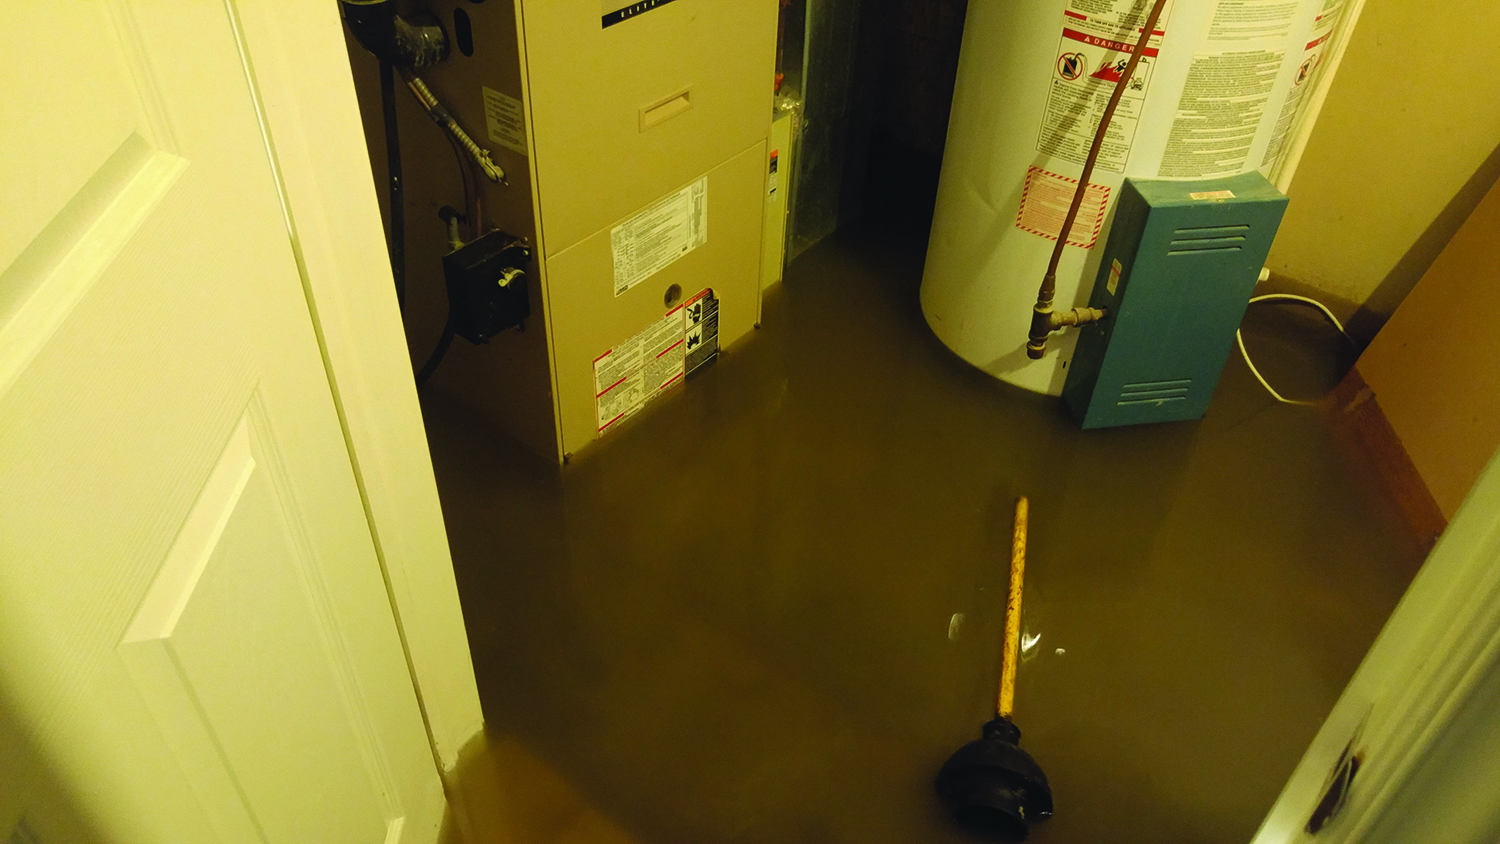 Basement Flooding Can Occur At Any Time For A Variety Of Reasons. Often,  These Floods Are Caused By Lots Of Rain, Or Rapid Snowmelts In The Spring.